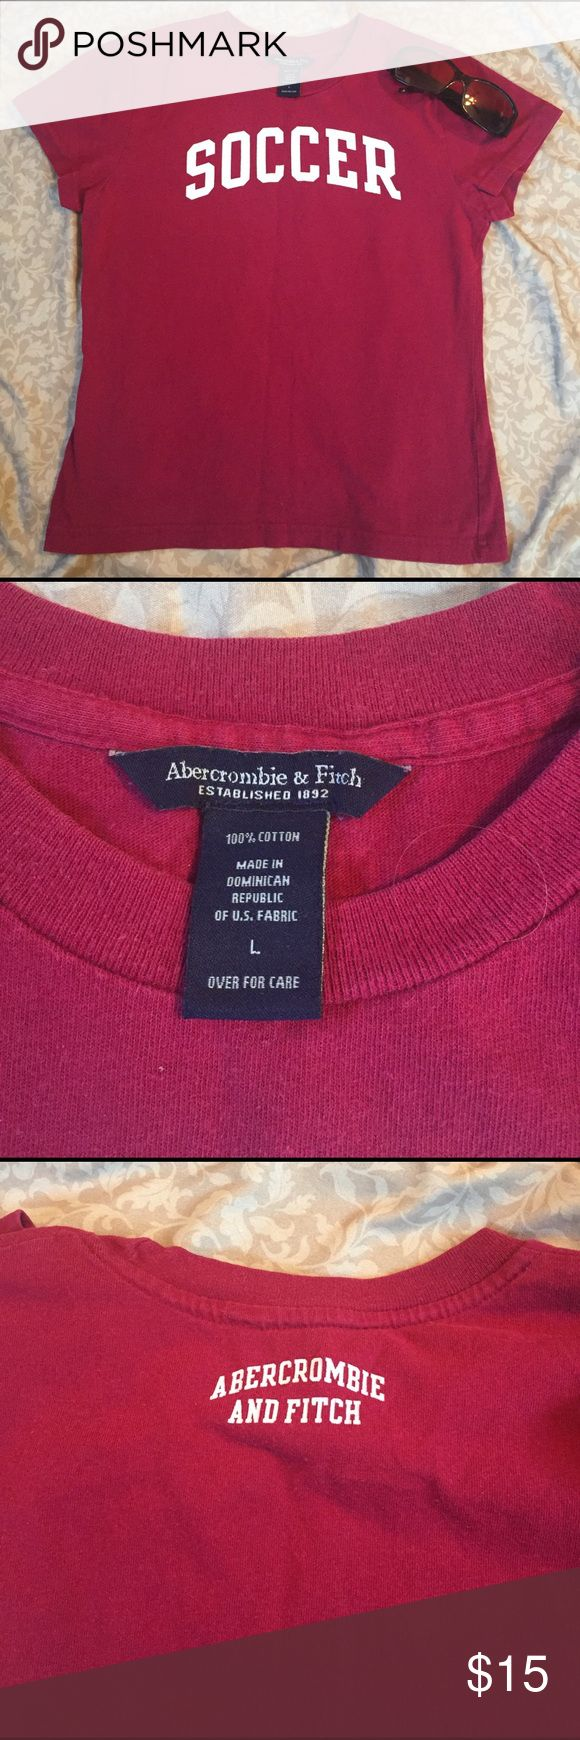 Abercrombie and Fitch soccer T-shirt Cute Abercrombie and Fitch Soccer T-shirt junior large Abercrombie & Fitch Tops Tees - Short Sleeve